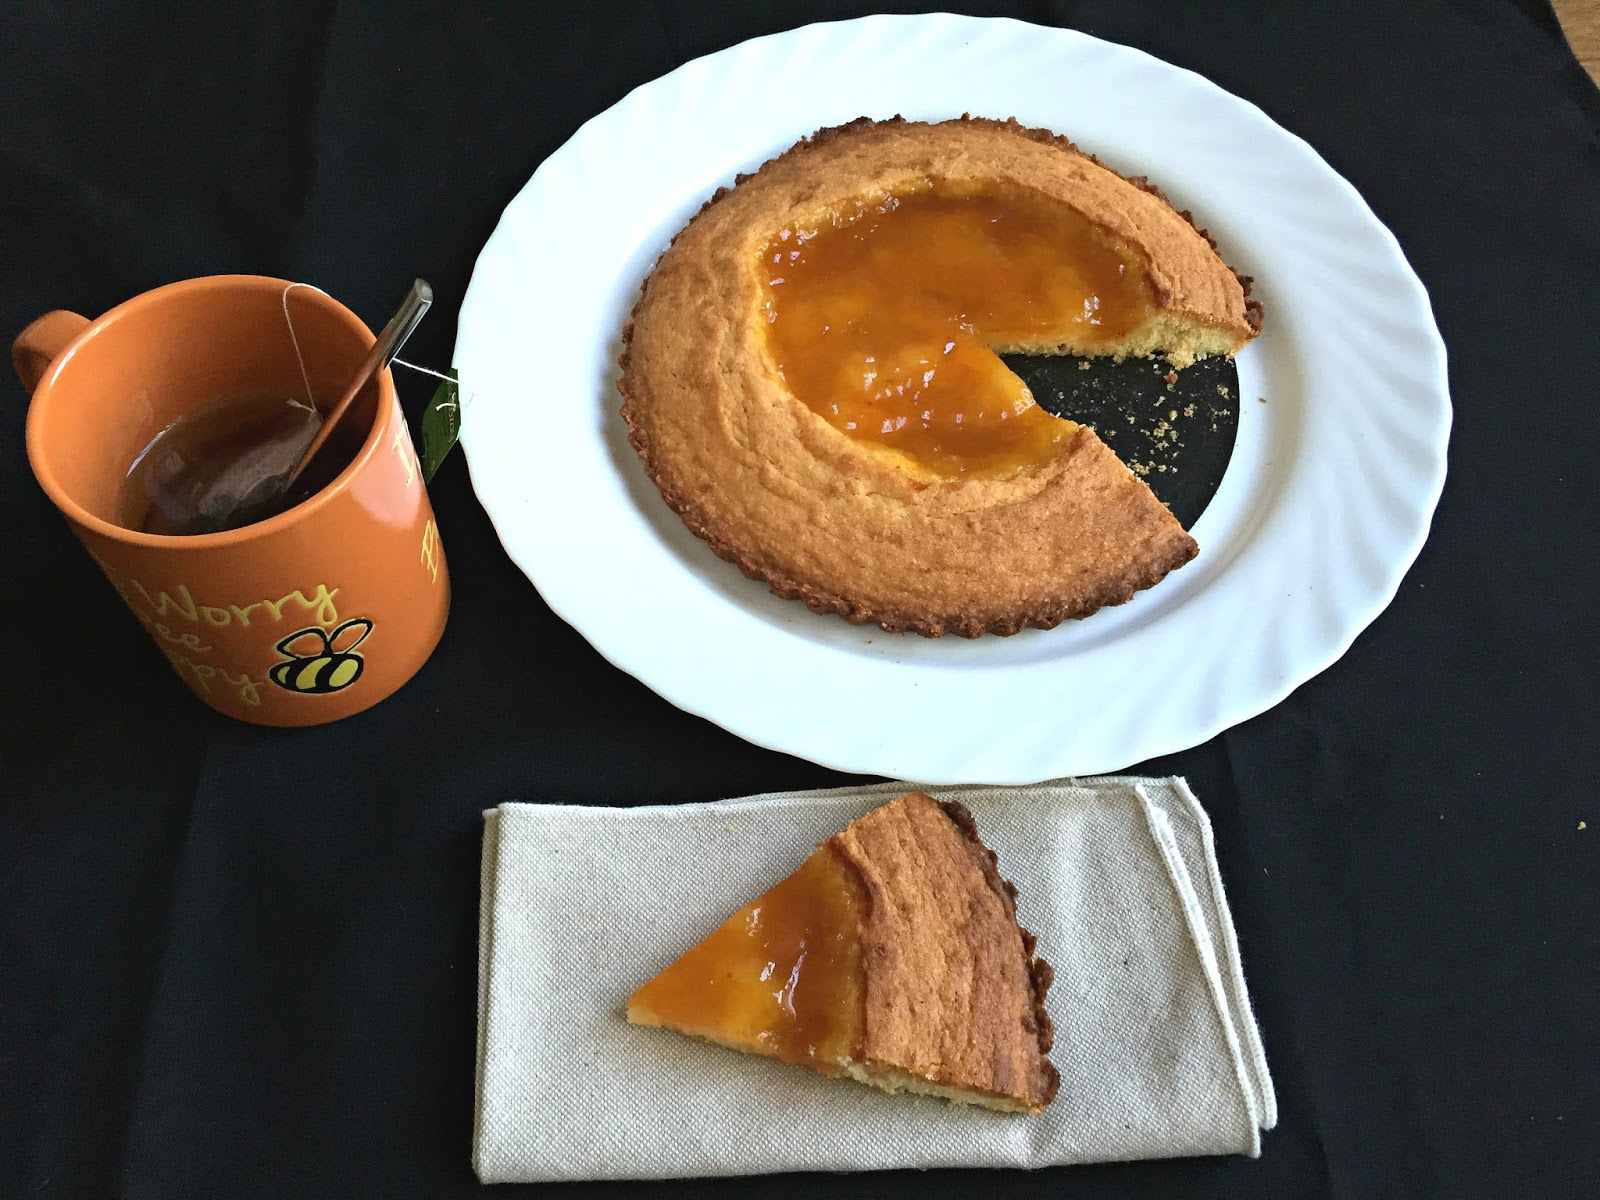 Soft crostata with almonds and apricot jam